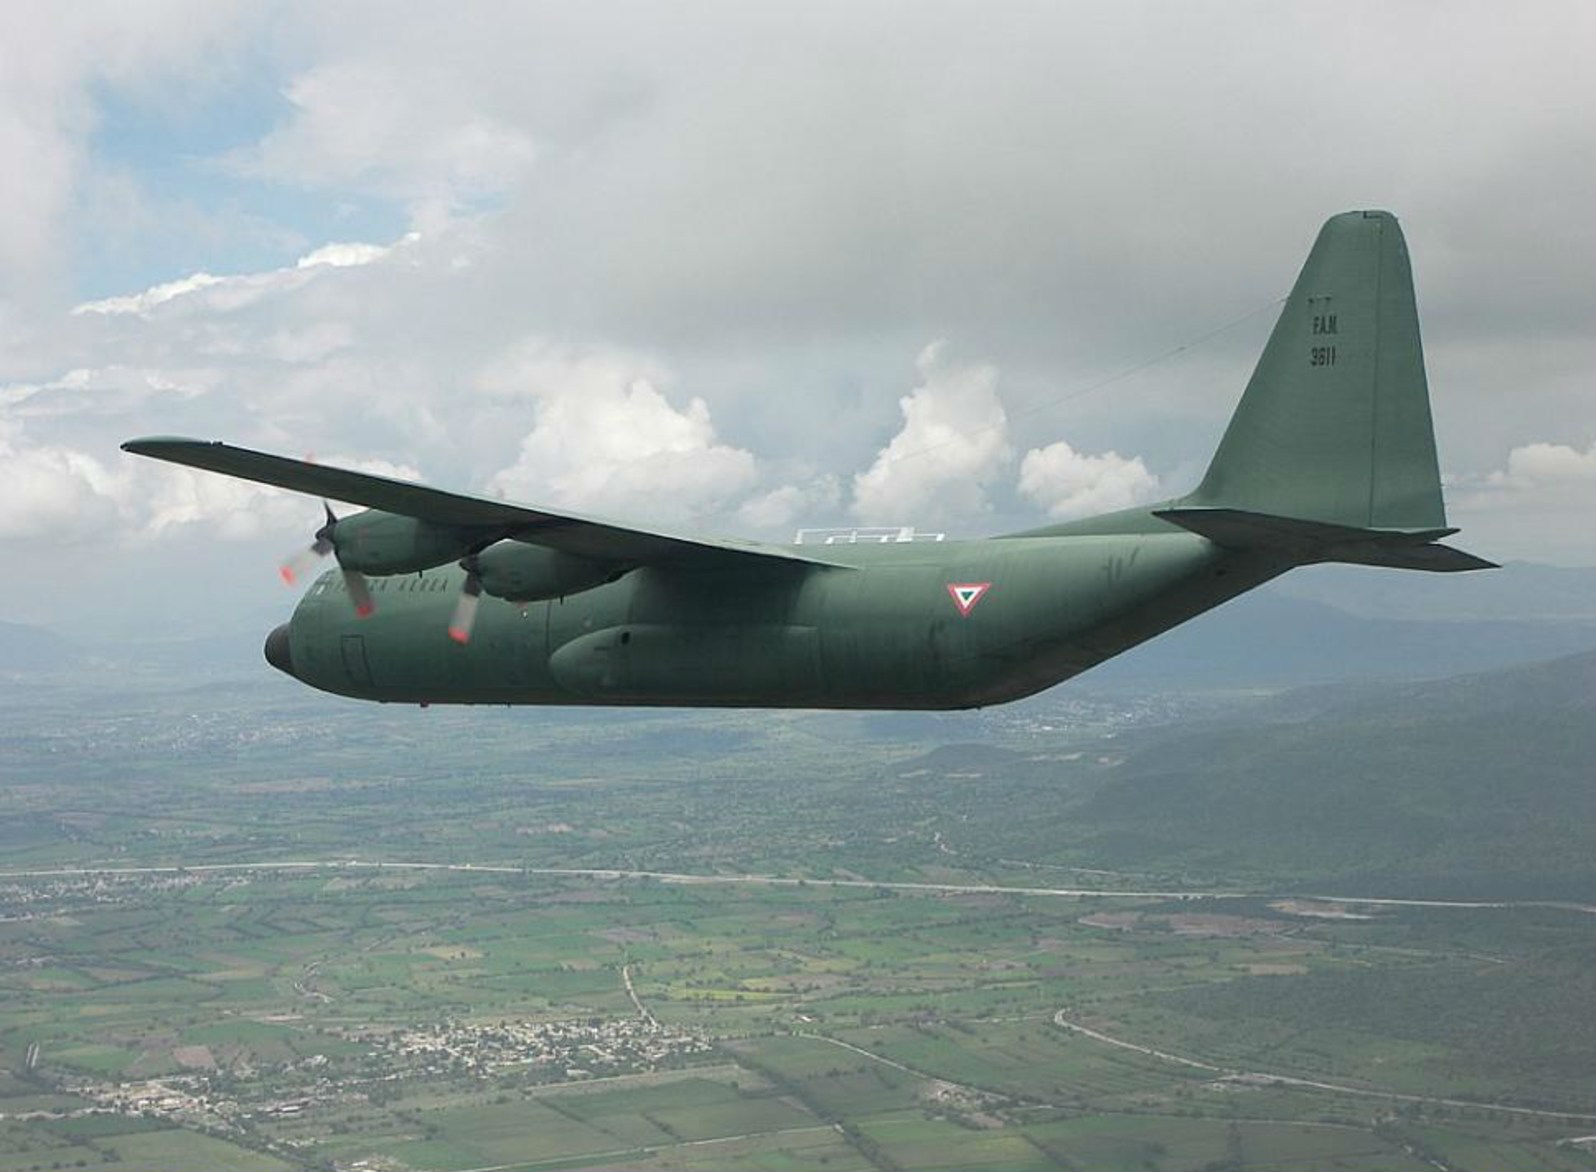 A Fuerza Aérea Mexicana L-100 (C-130) Hercules aircraft, in flight.